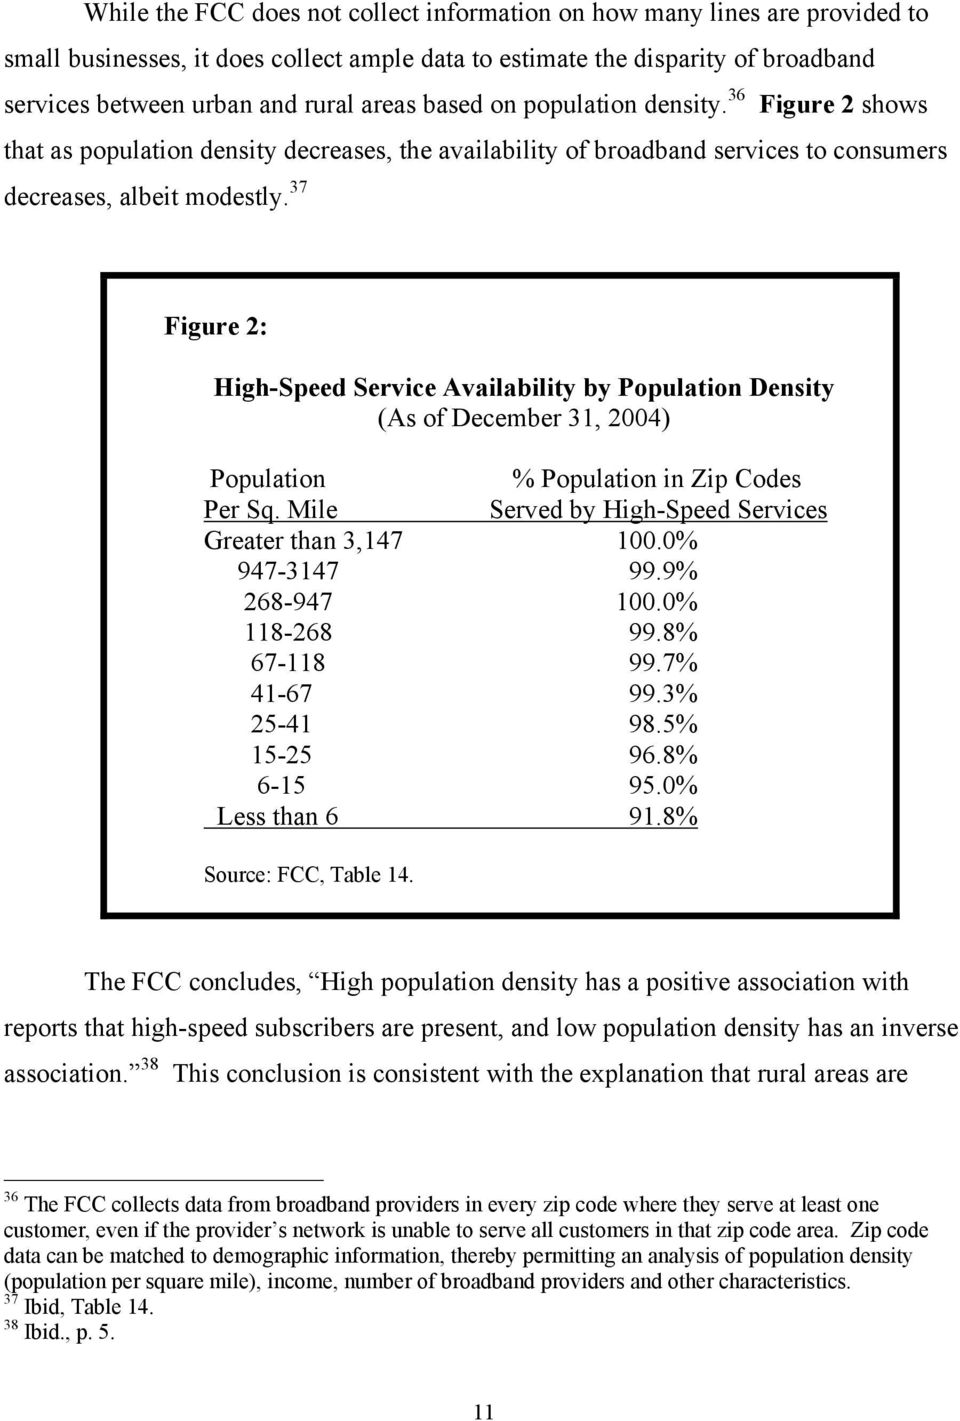 37 Figure 2: High-Speed Service Availability by Population Density (As of December 31, 2004) Population % Population in Zip Codes Per Sq. Mile Served by High-Speed Services Greater than 3,147 100.